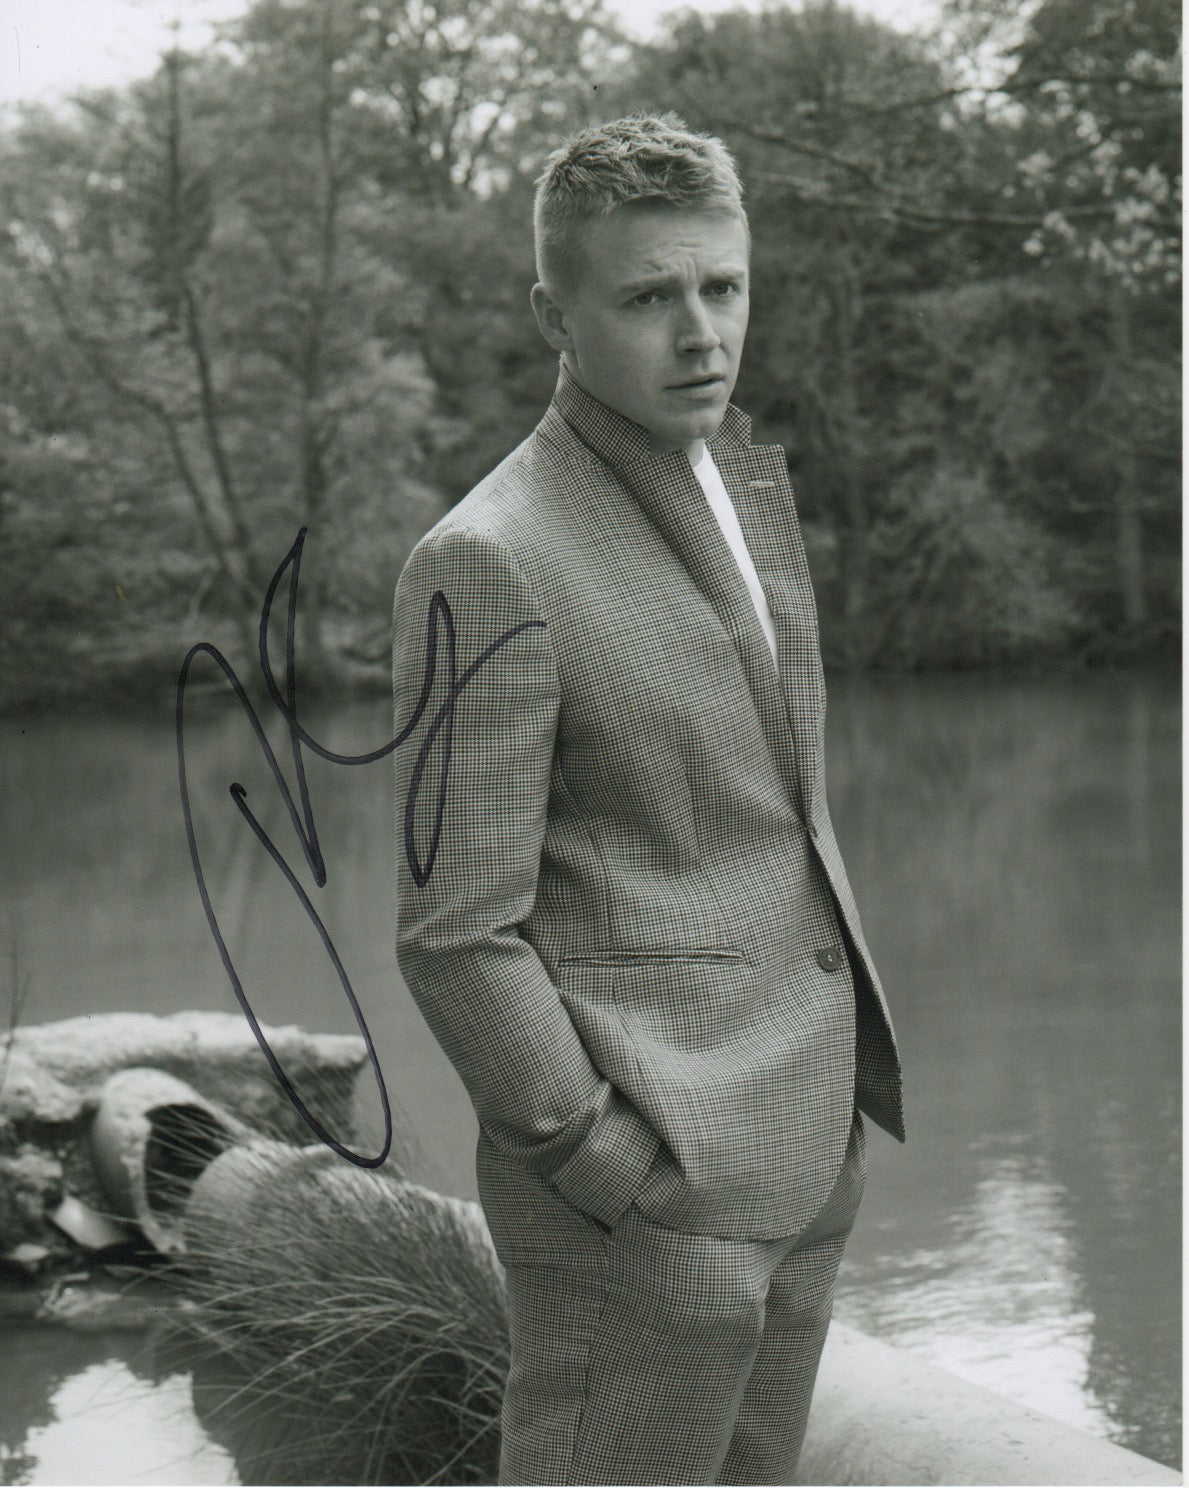 Jack Lowden Signed Autograph 8x10 Photo #2 - Outlaw Hobbies Authentic Autographs